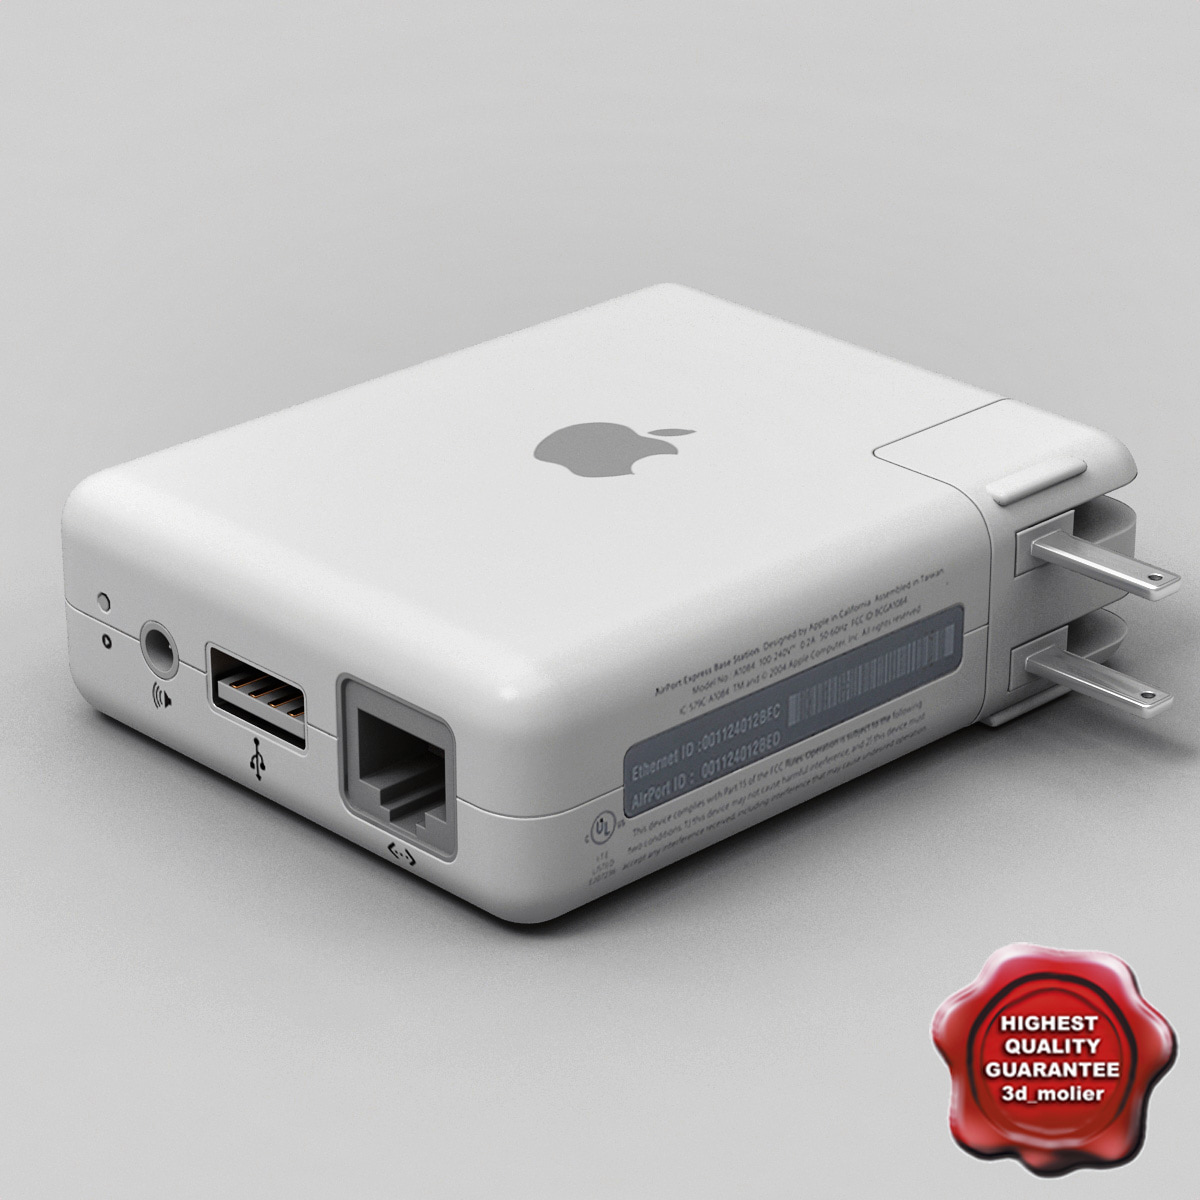 c4d apple airport express